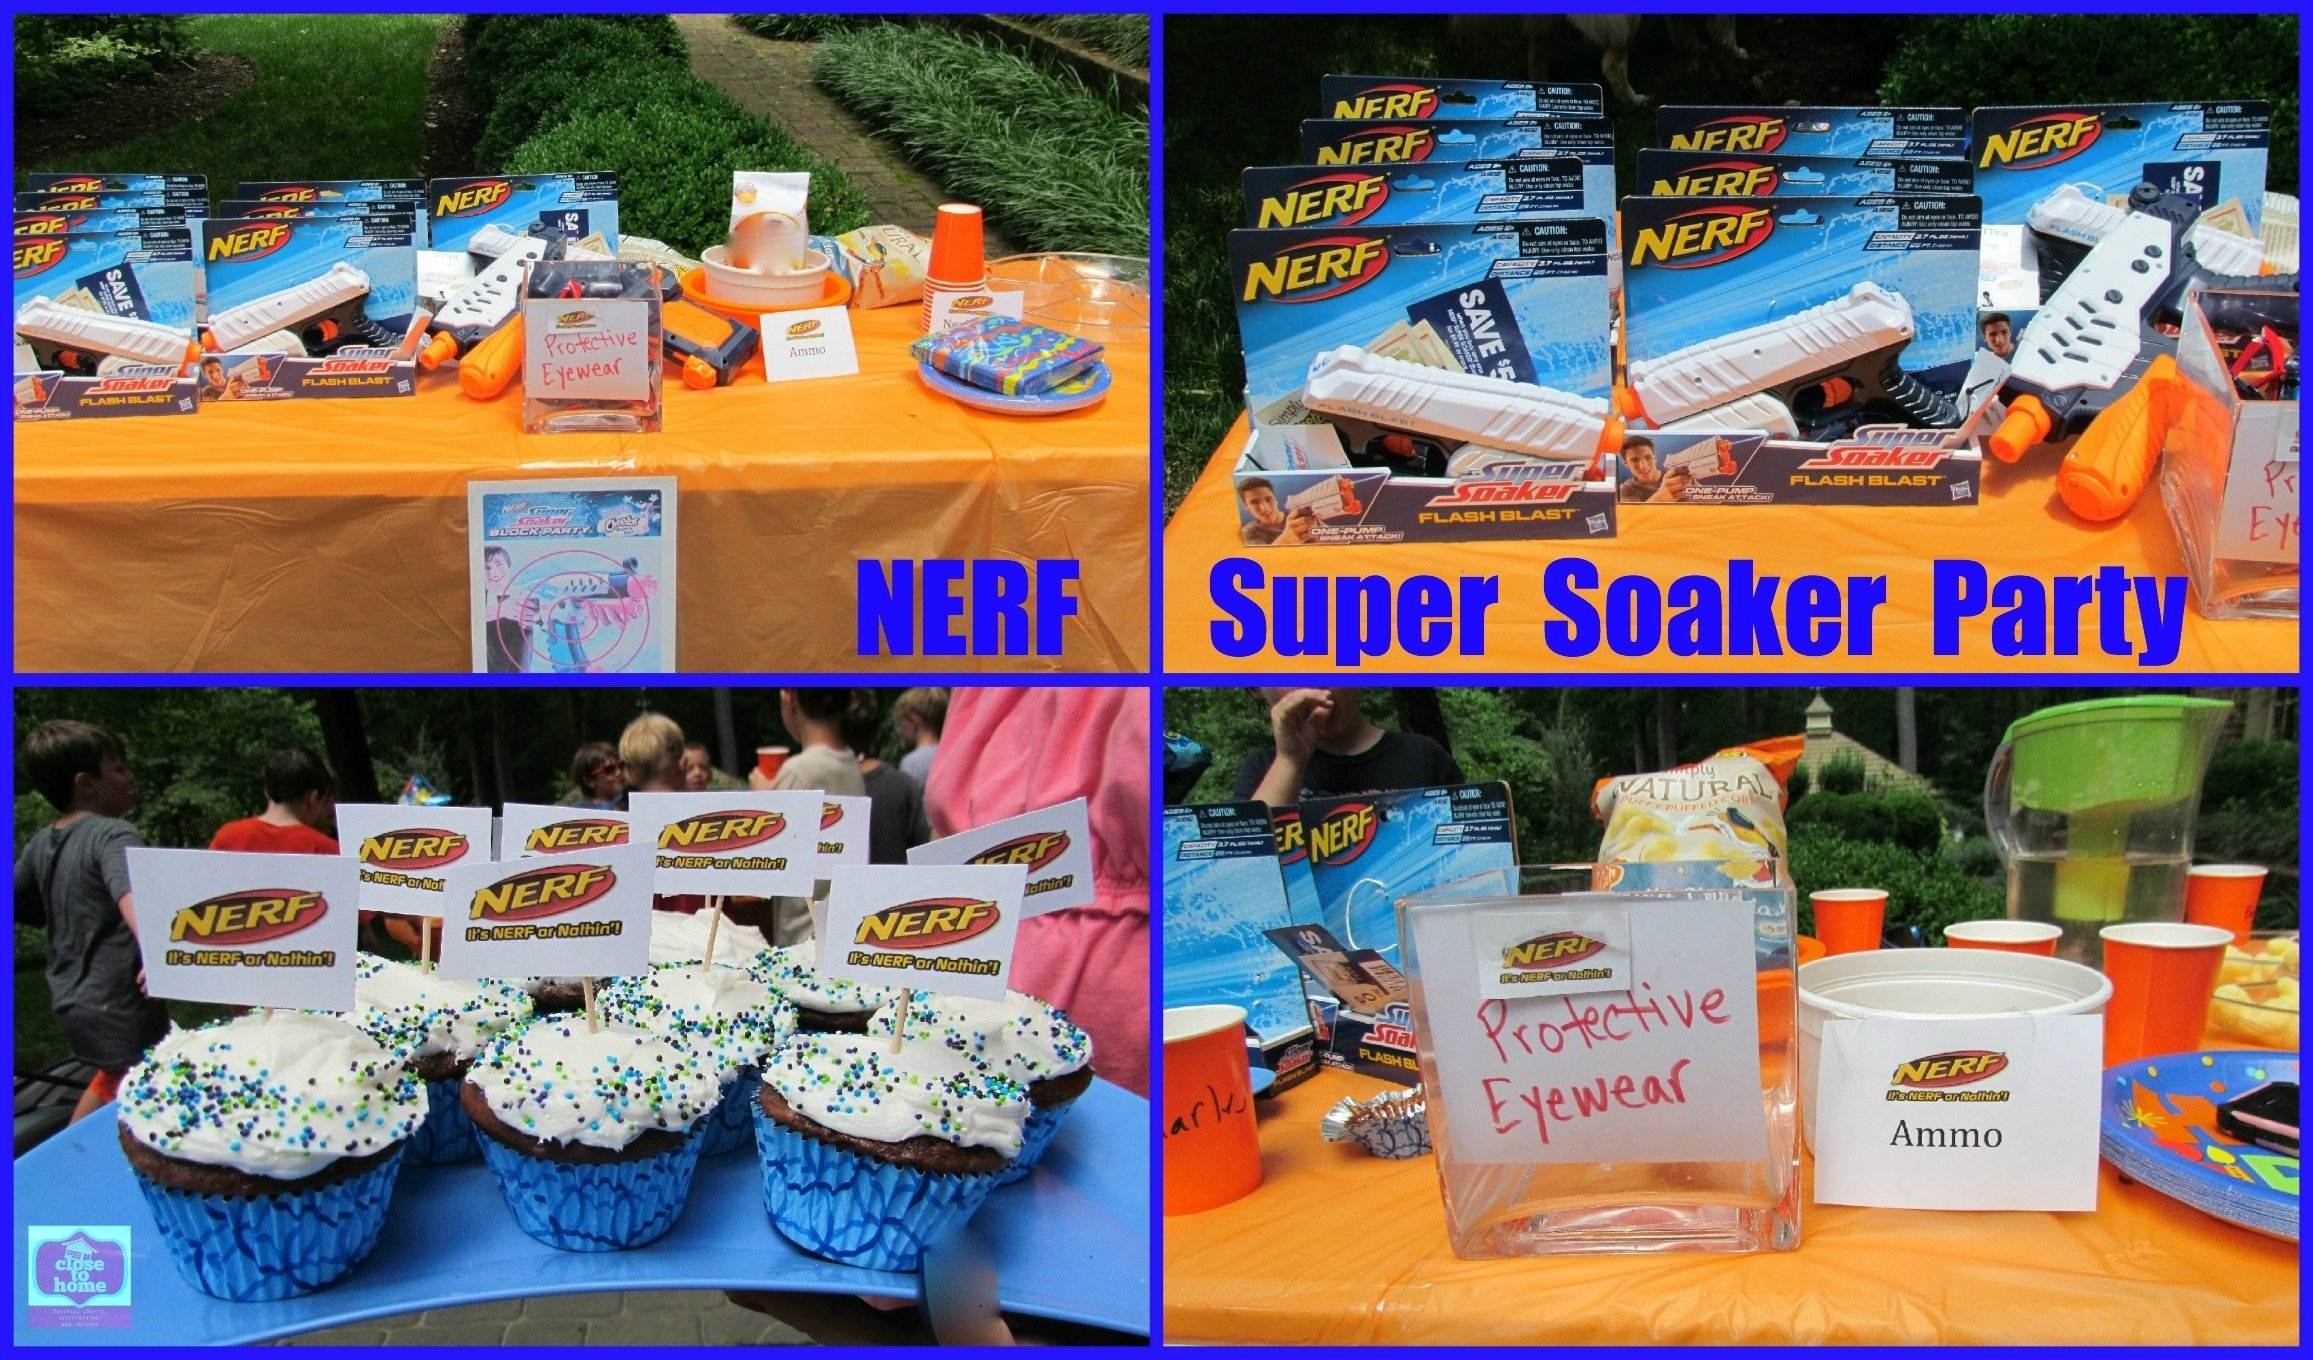 10 Lovely Birthday Party Ideas For A 12 Year Old Boy summer birthday party ideas nerf super soaker boy wellsuited for 7 5 2020